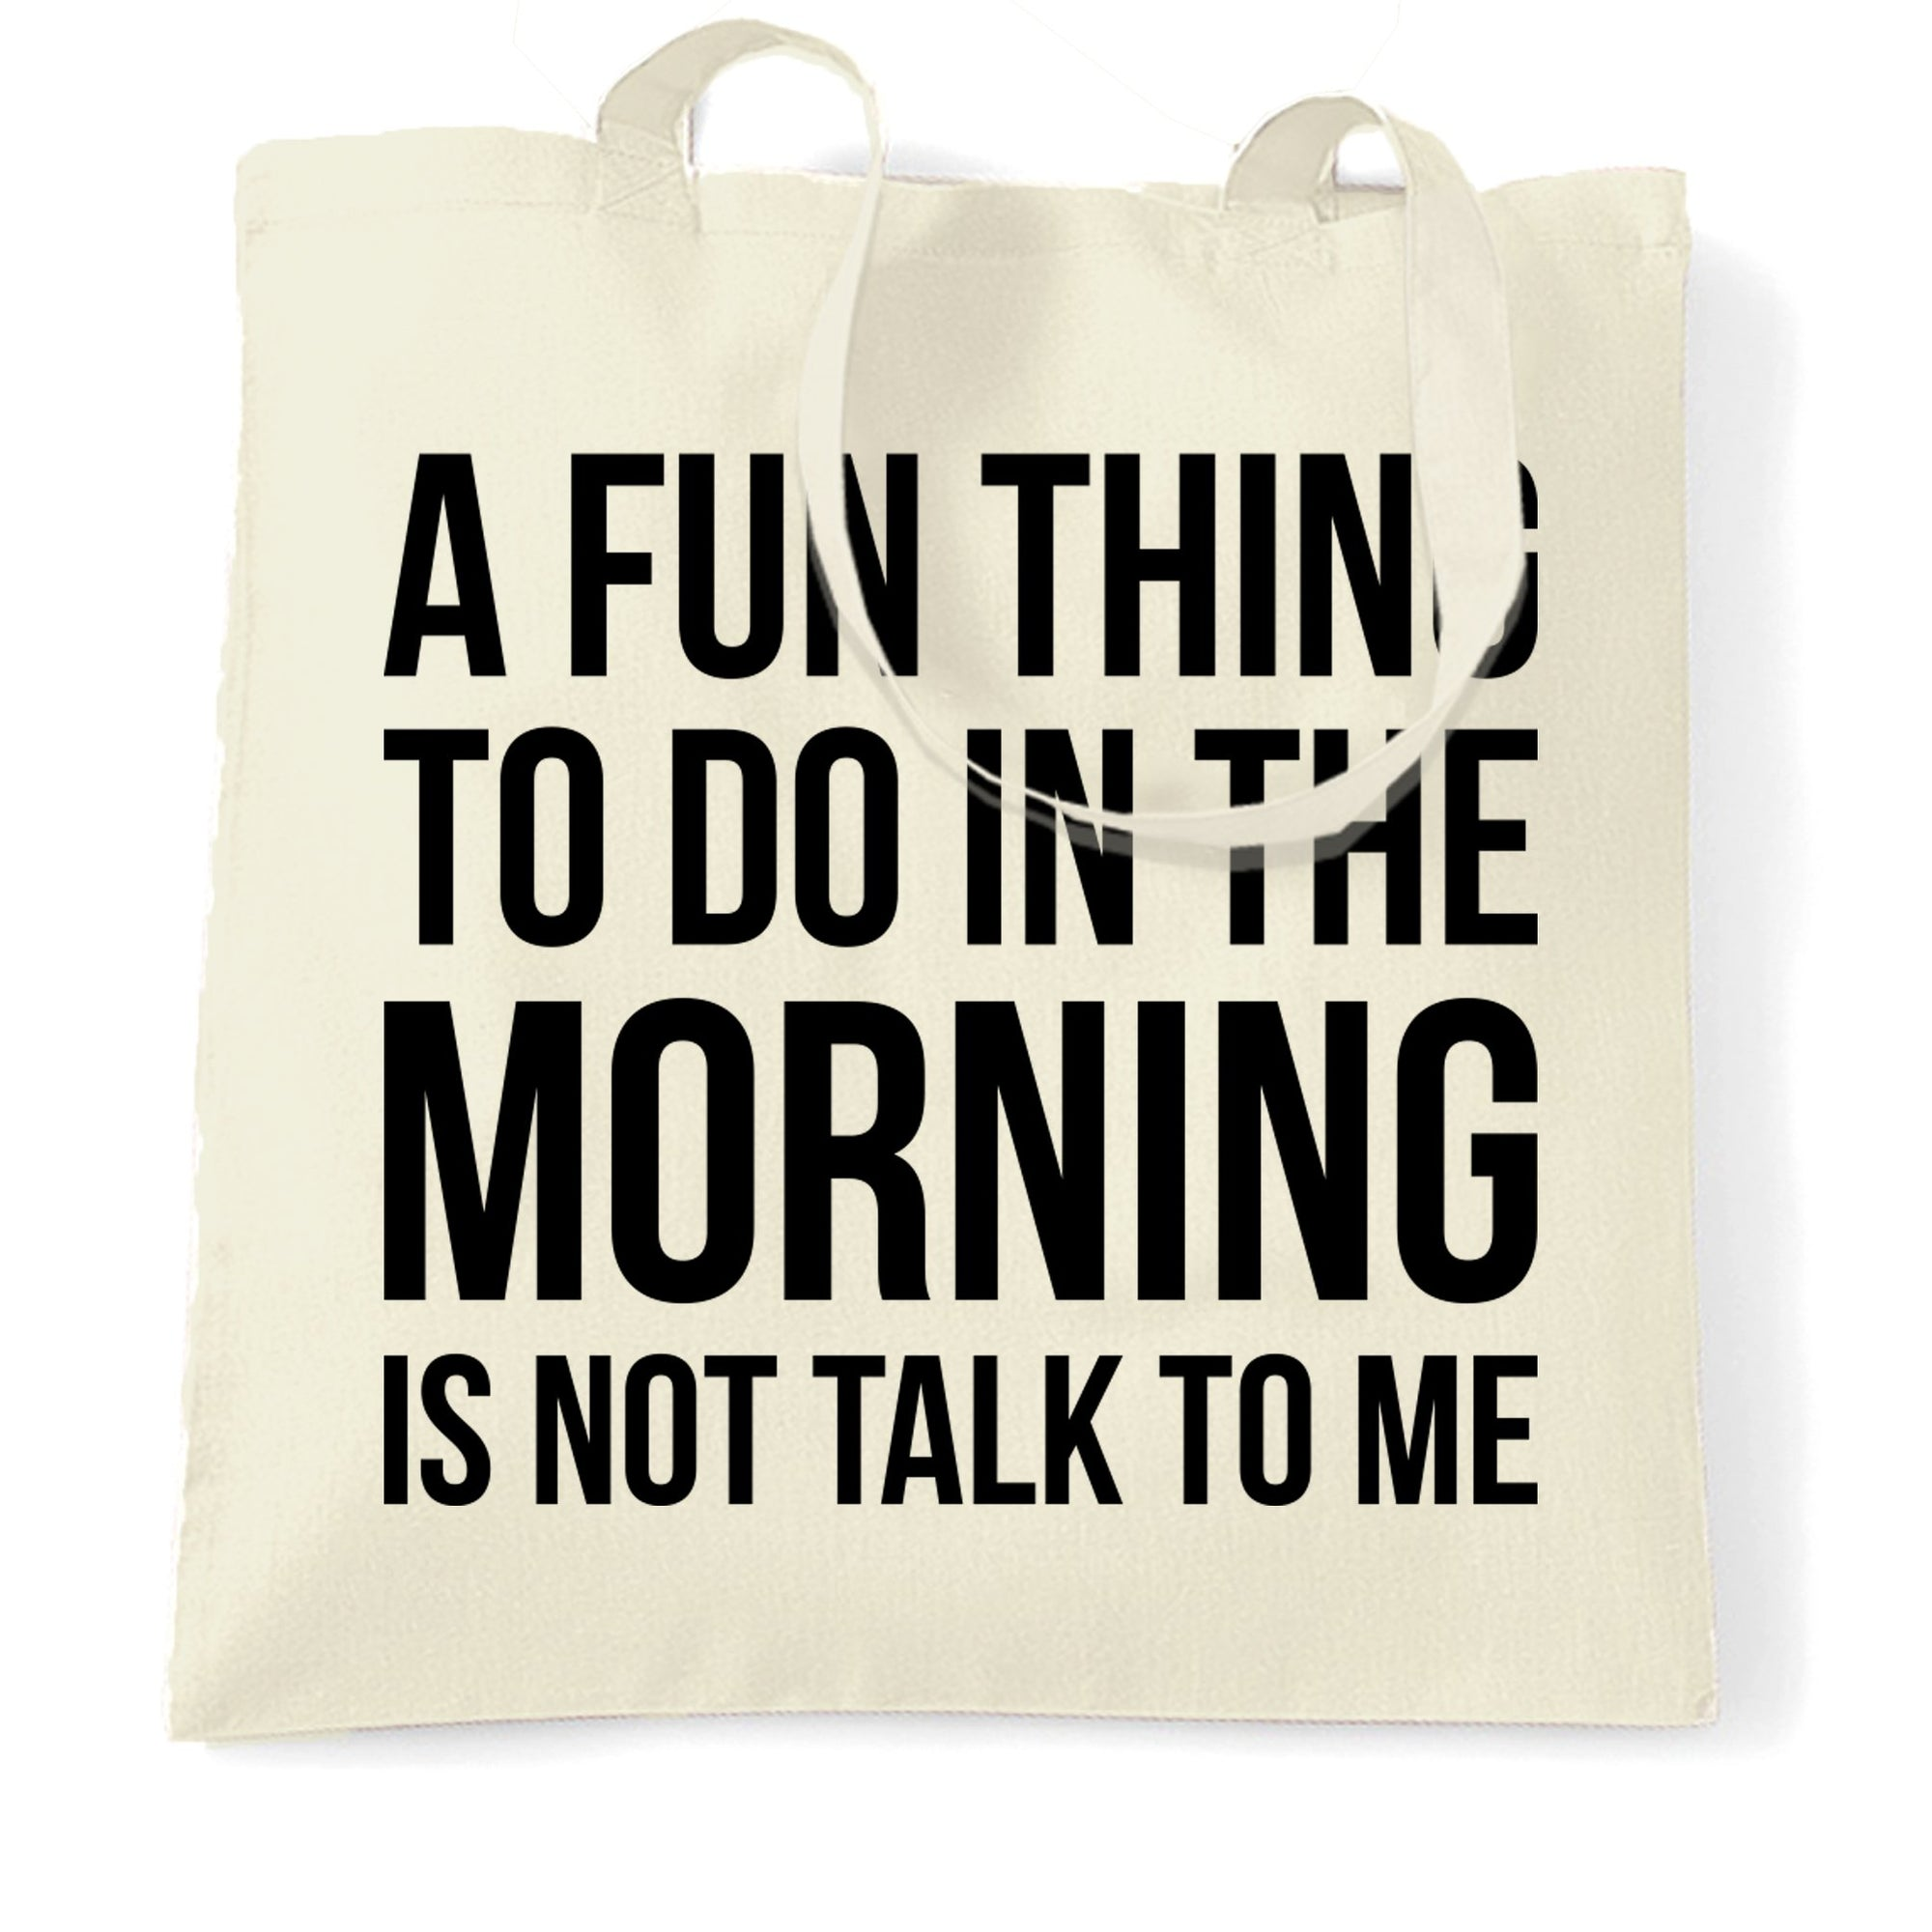 Funny Tote Bag A Fun Thing To Do Is Not Talk To Me